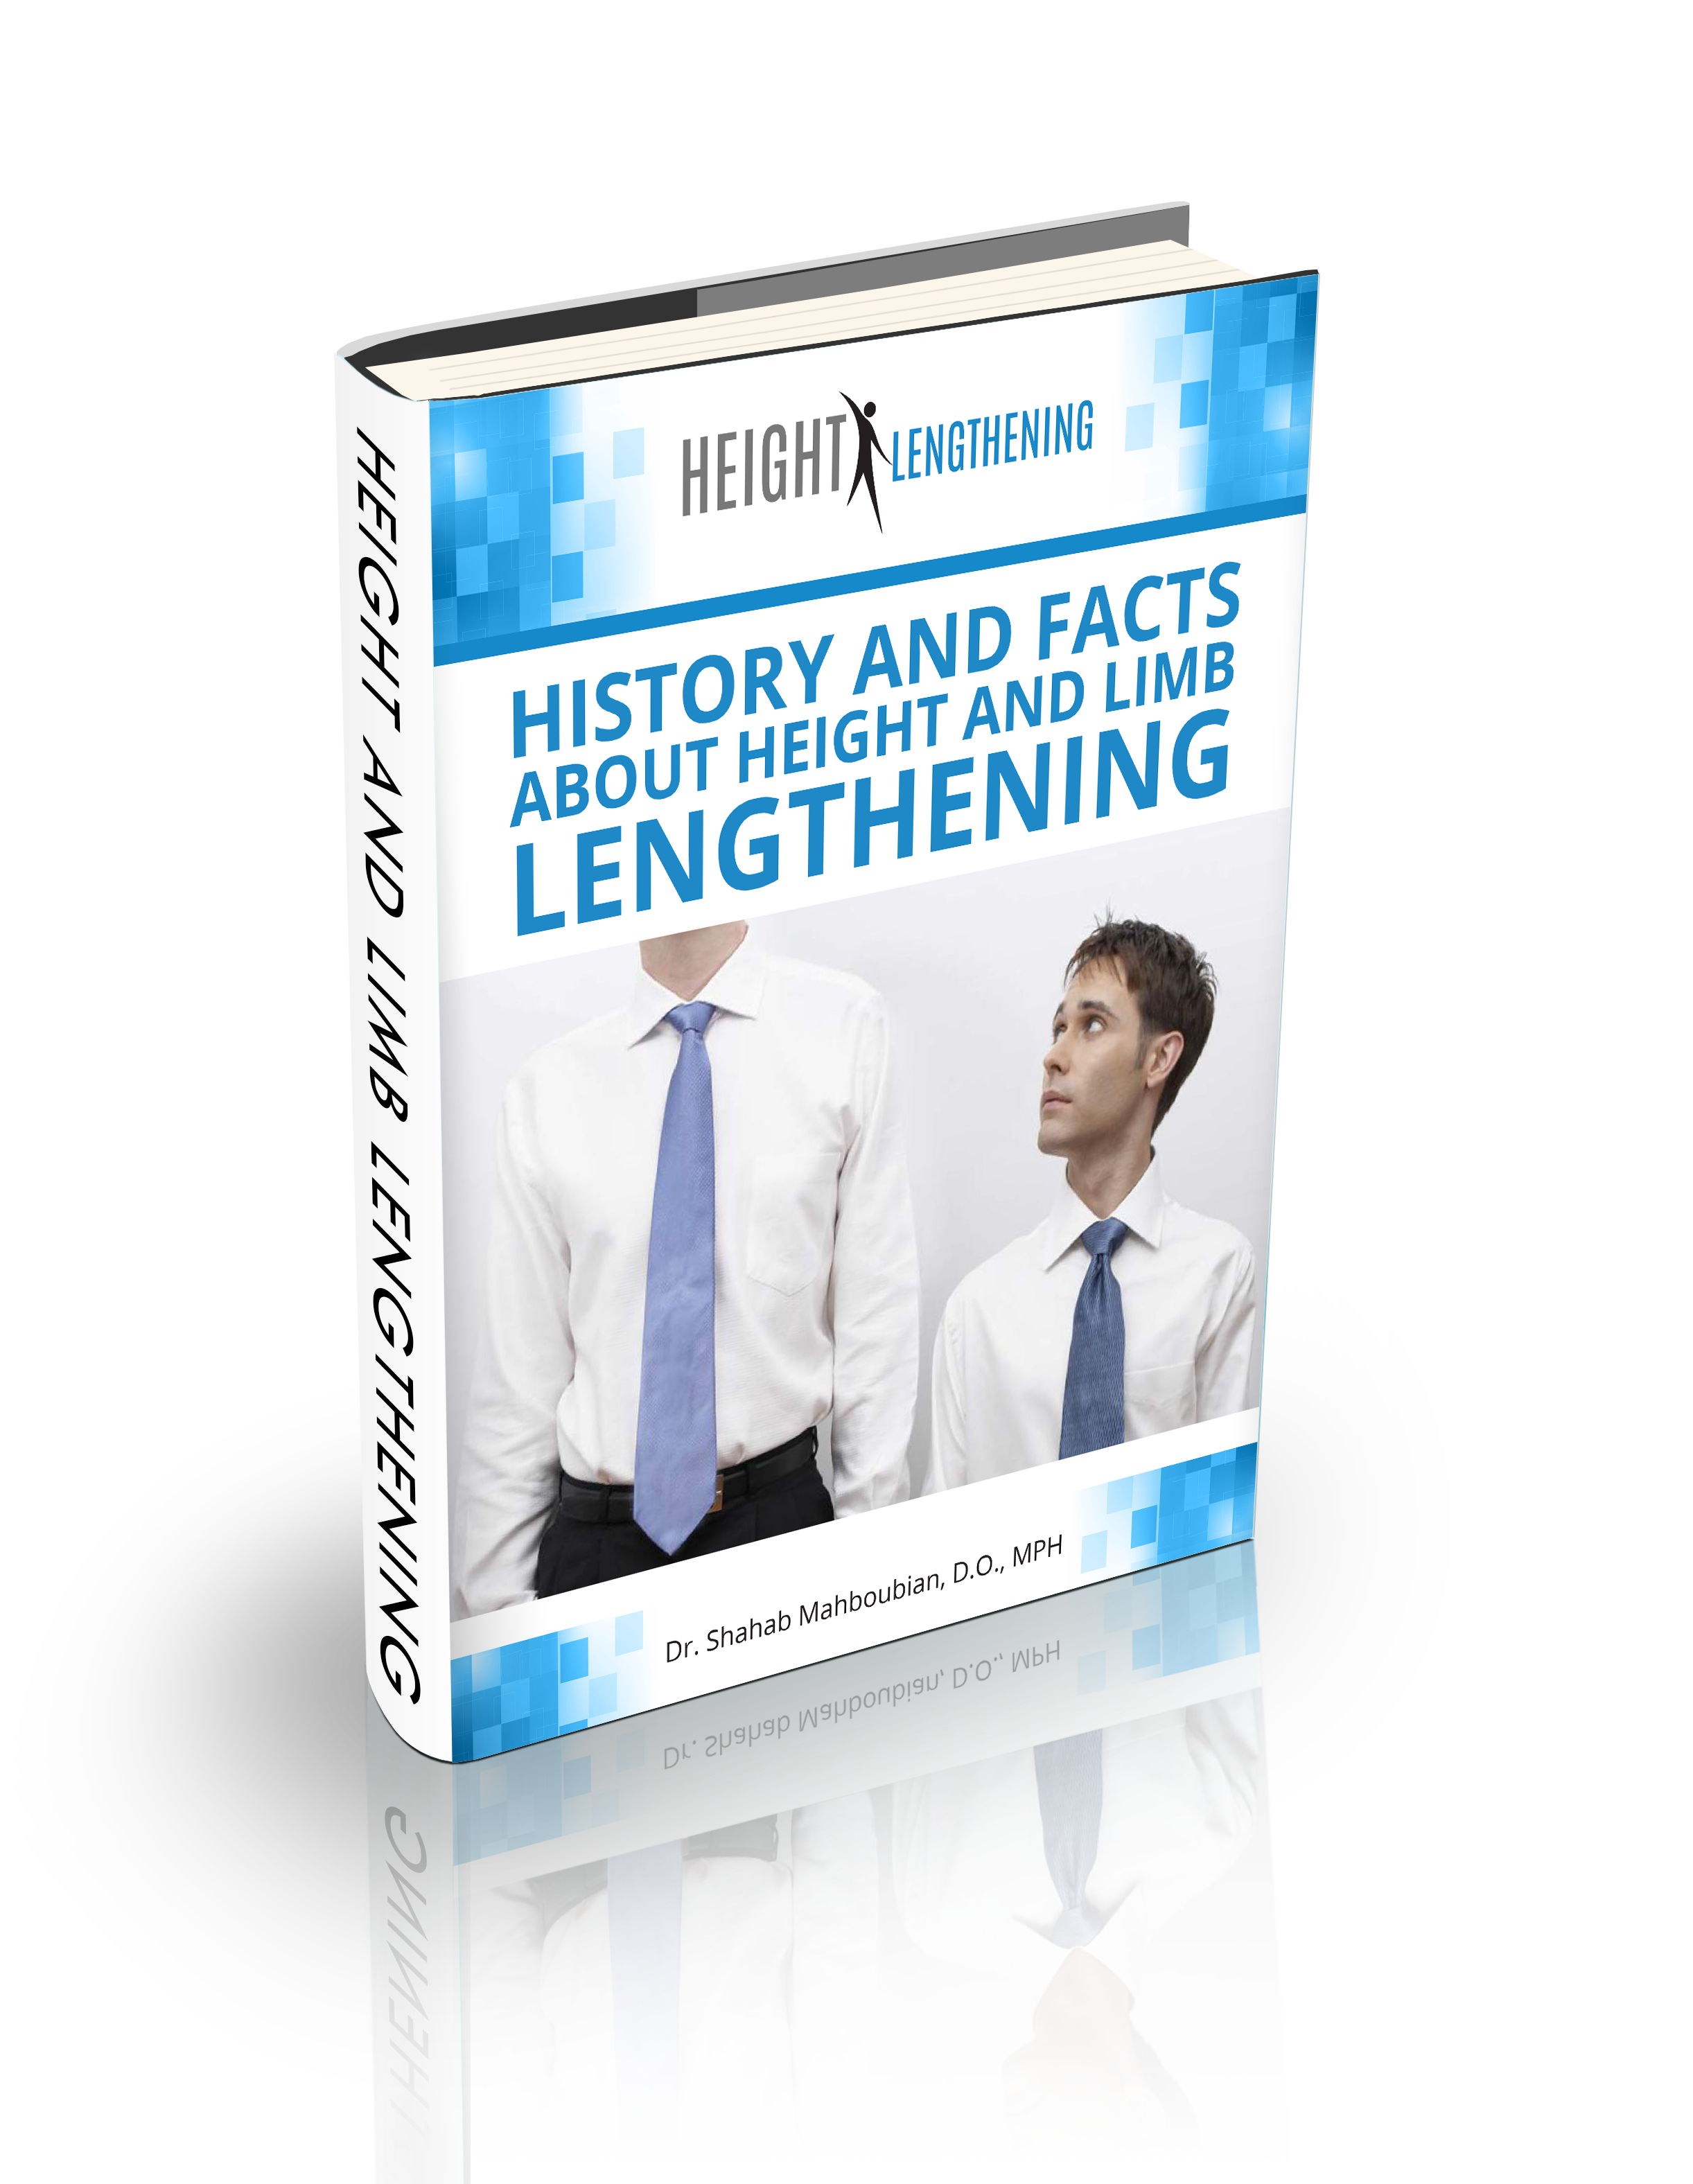 History and Facts on Height Lengthening FREE eBook Download